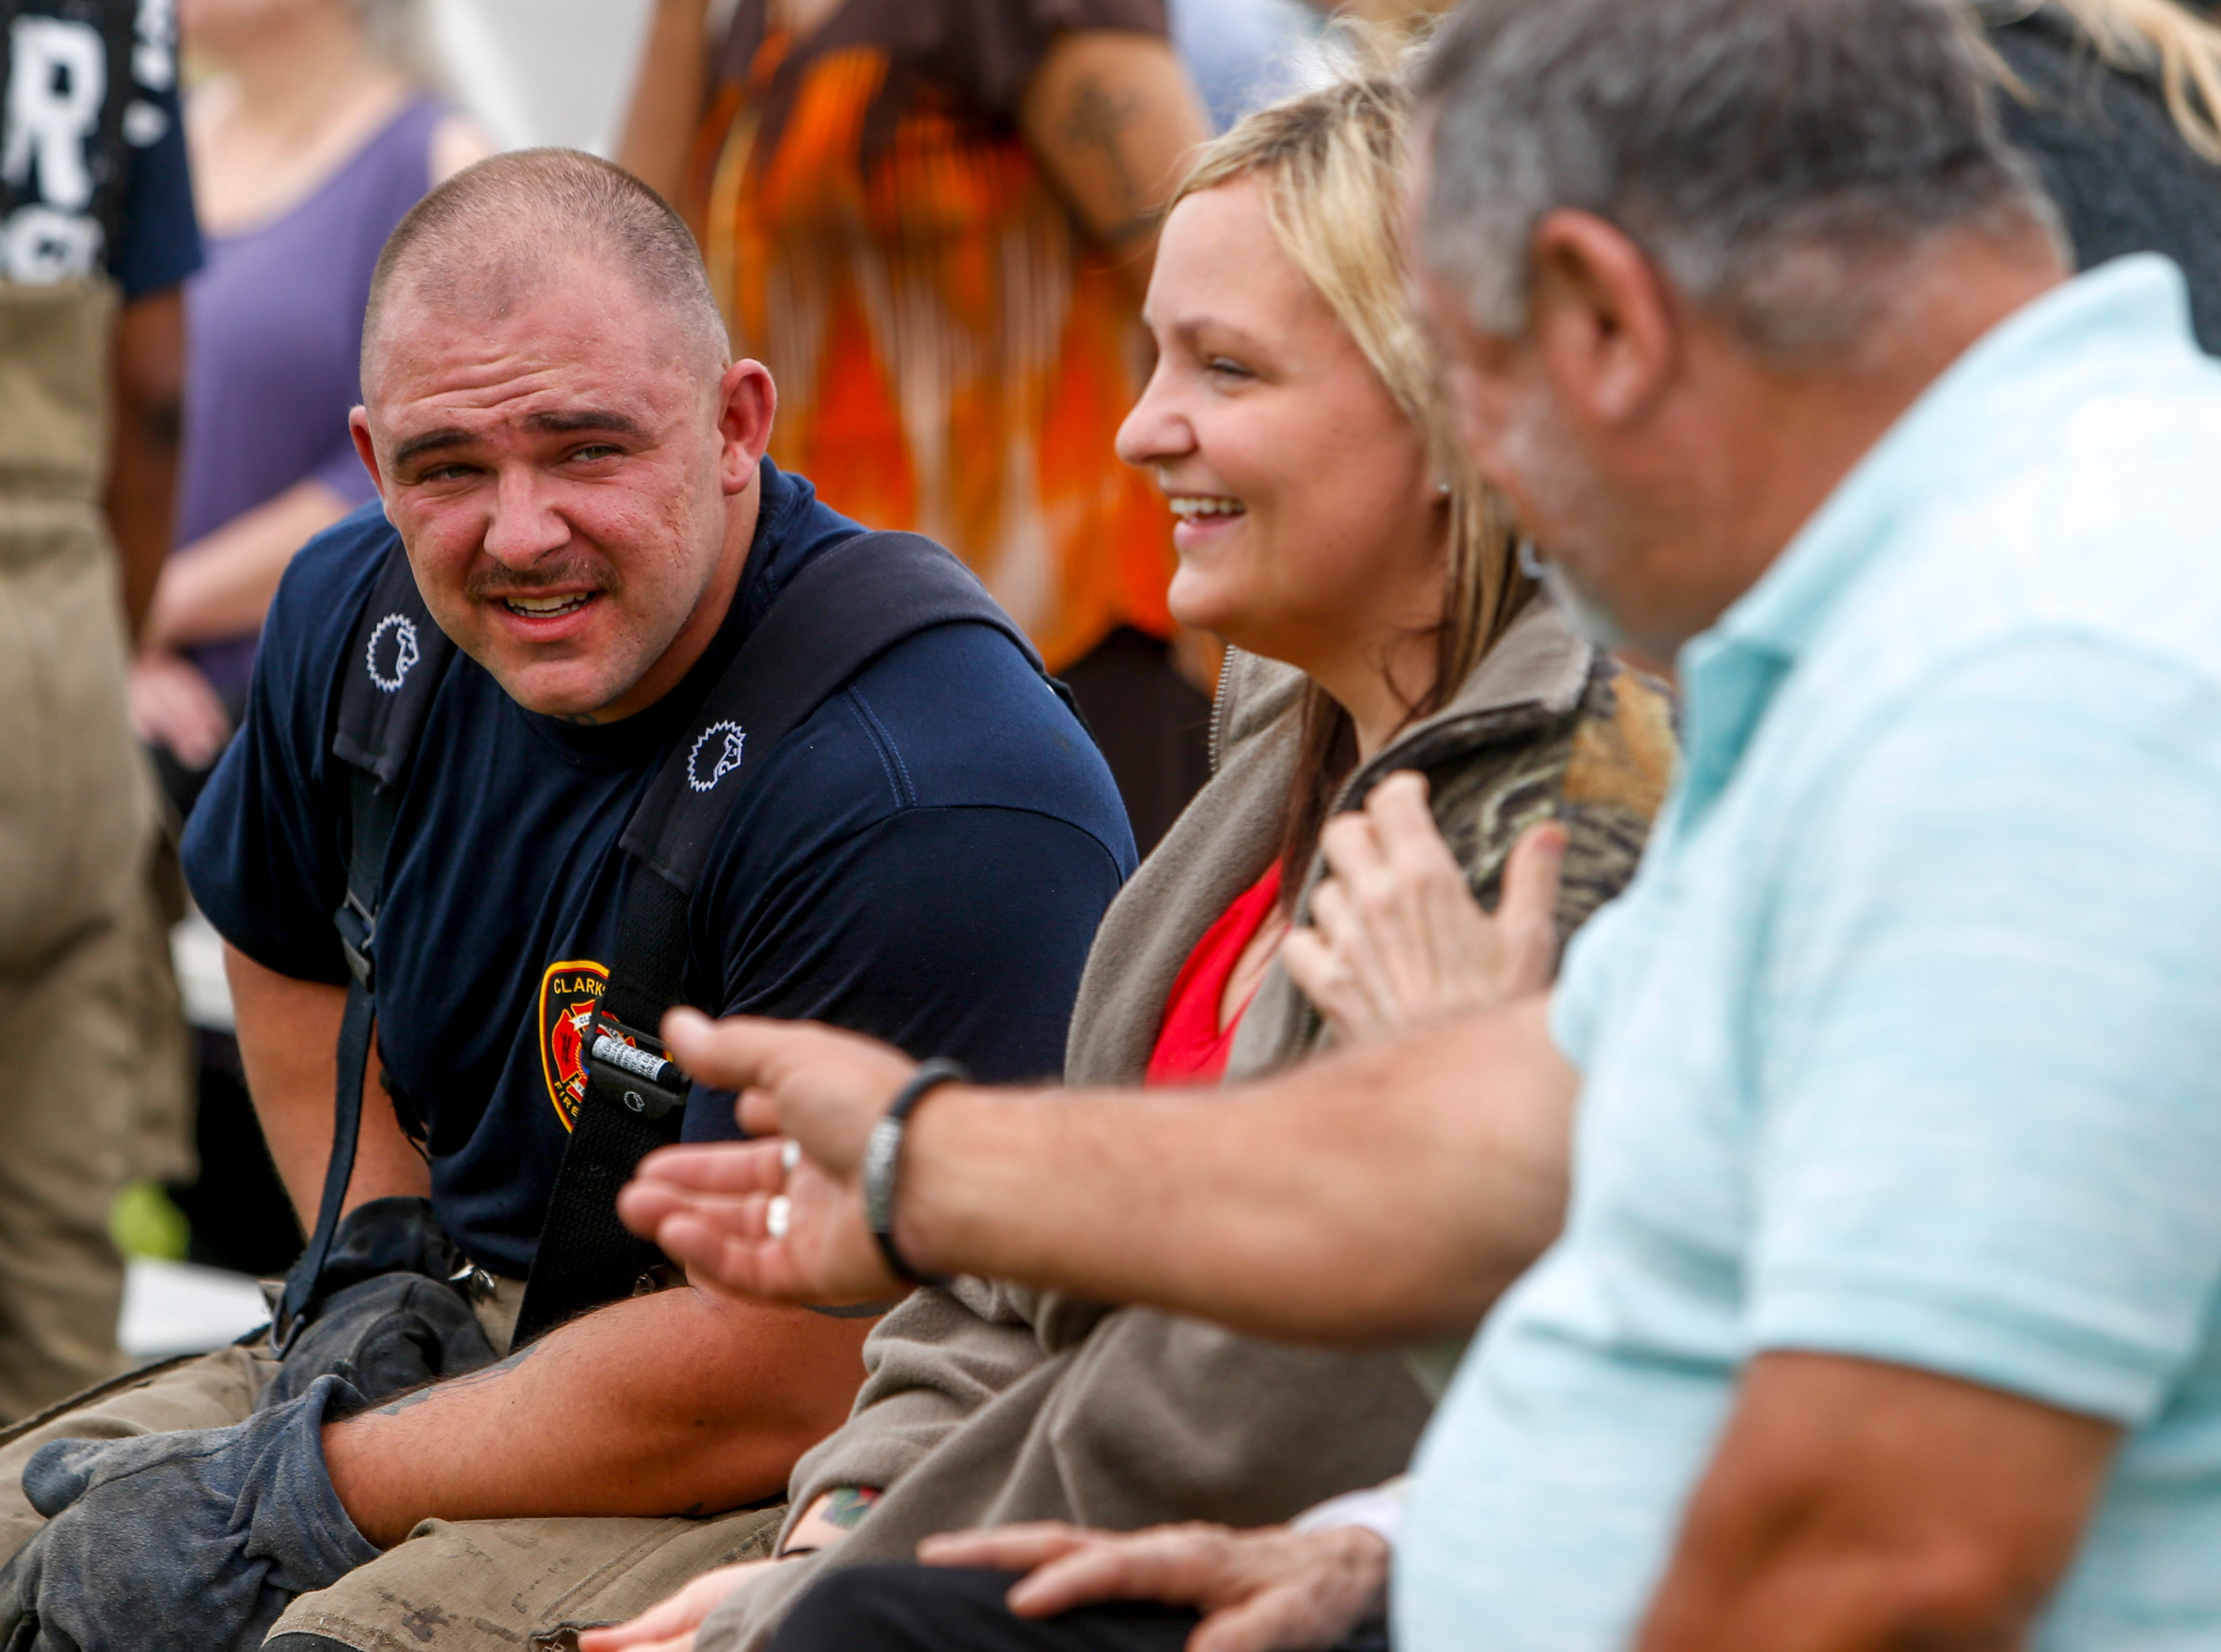 Cory Fain speaks with friends and family that came to watch him during his first live fire drill at Clarksville Fire Rescue in Clarksville, Tenn., on Friday, May 10, 2019.